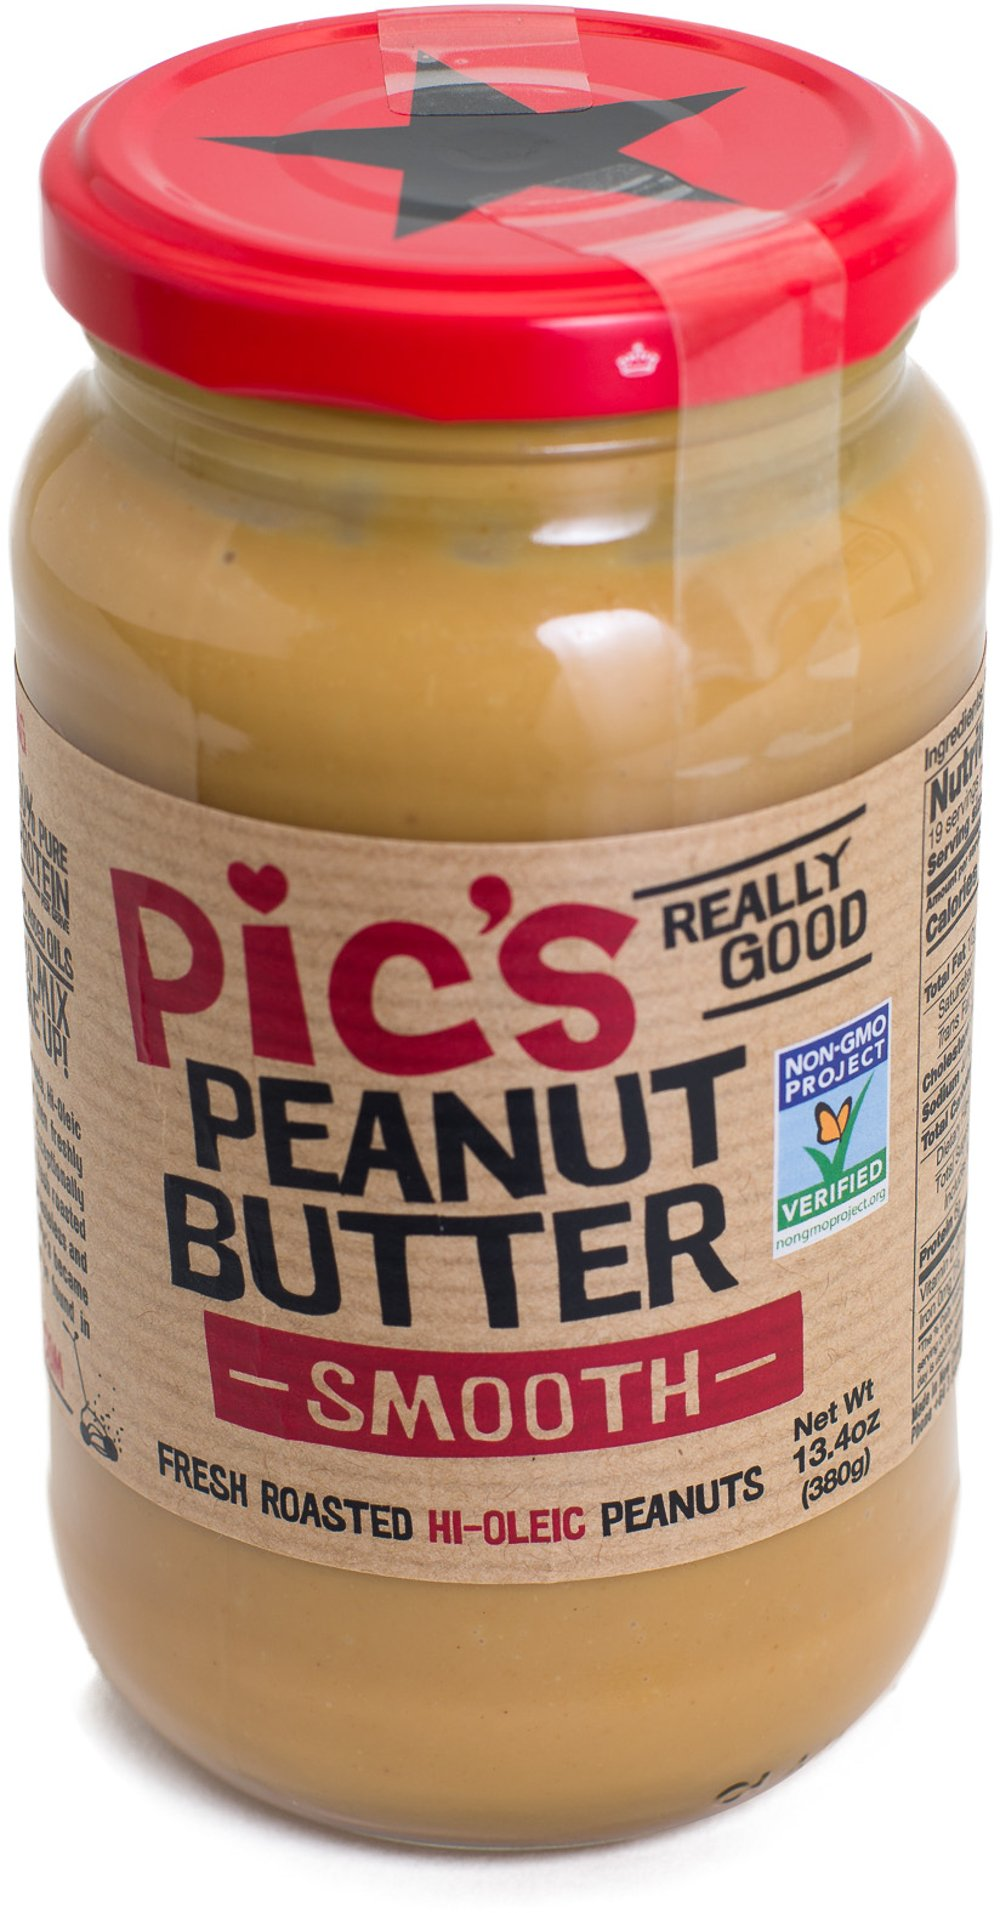 Pic's Really Good, Smooth Peanut Butter, 13.4 Ounce